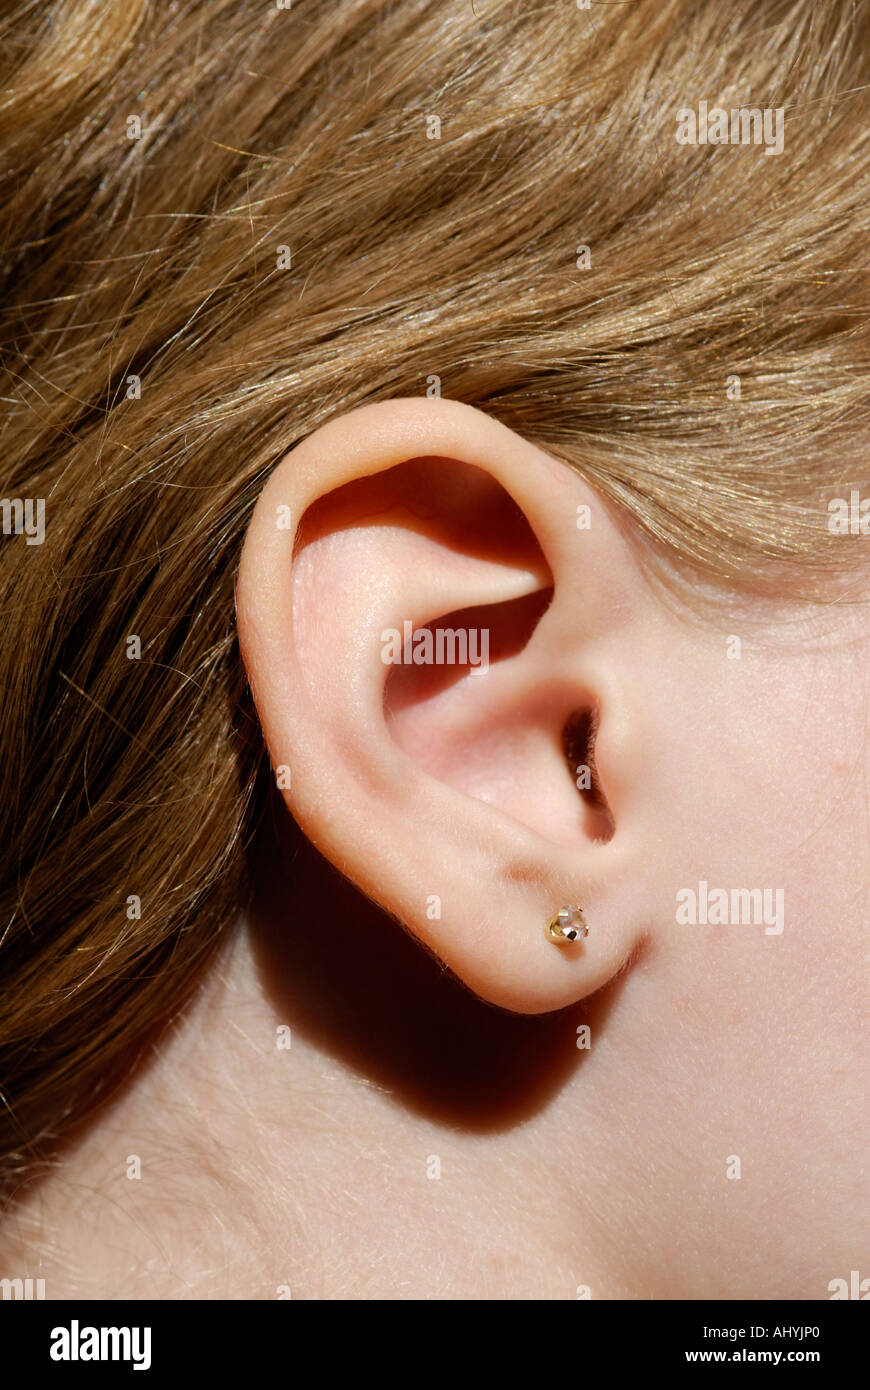 Human ear close up. Outer ear, pinna - Stock Image